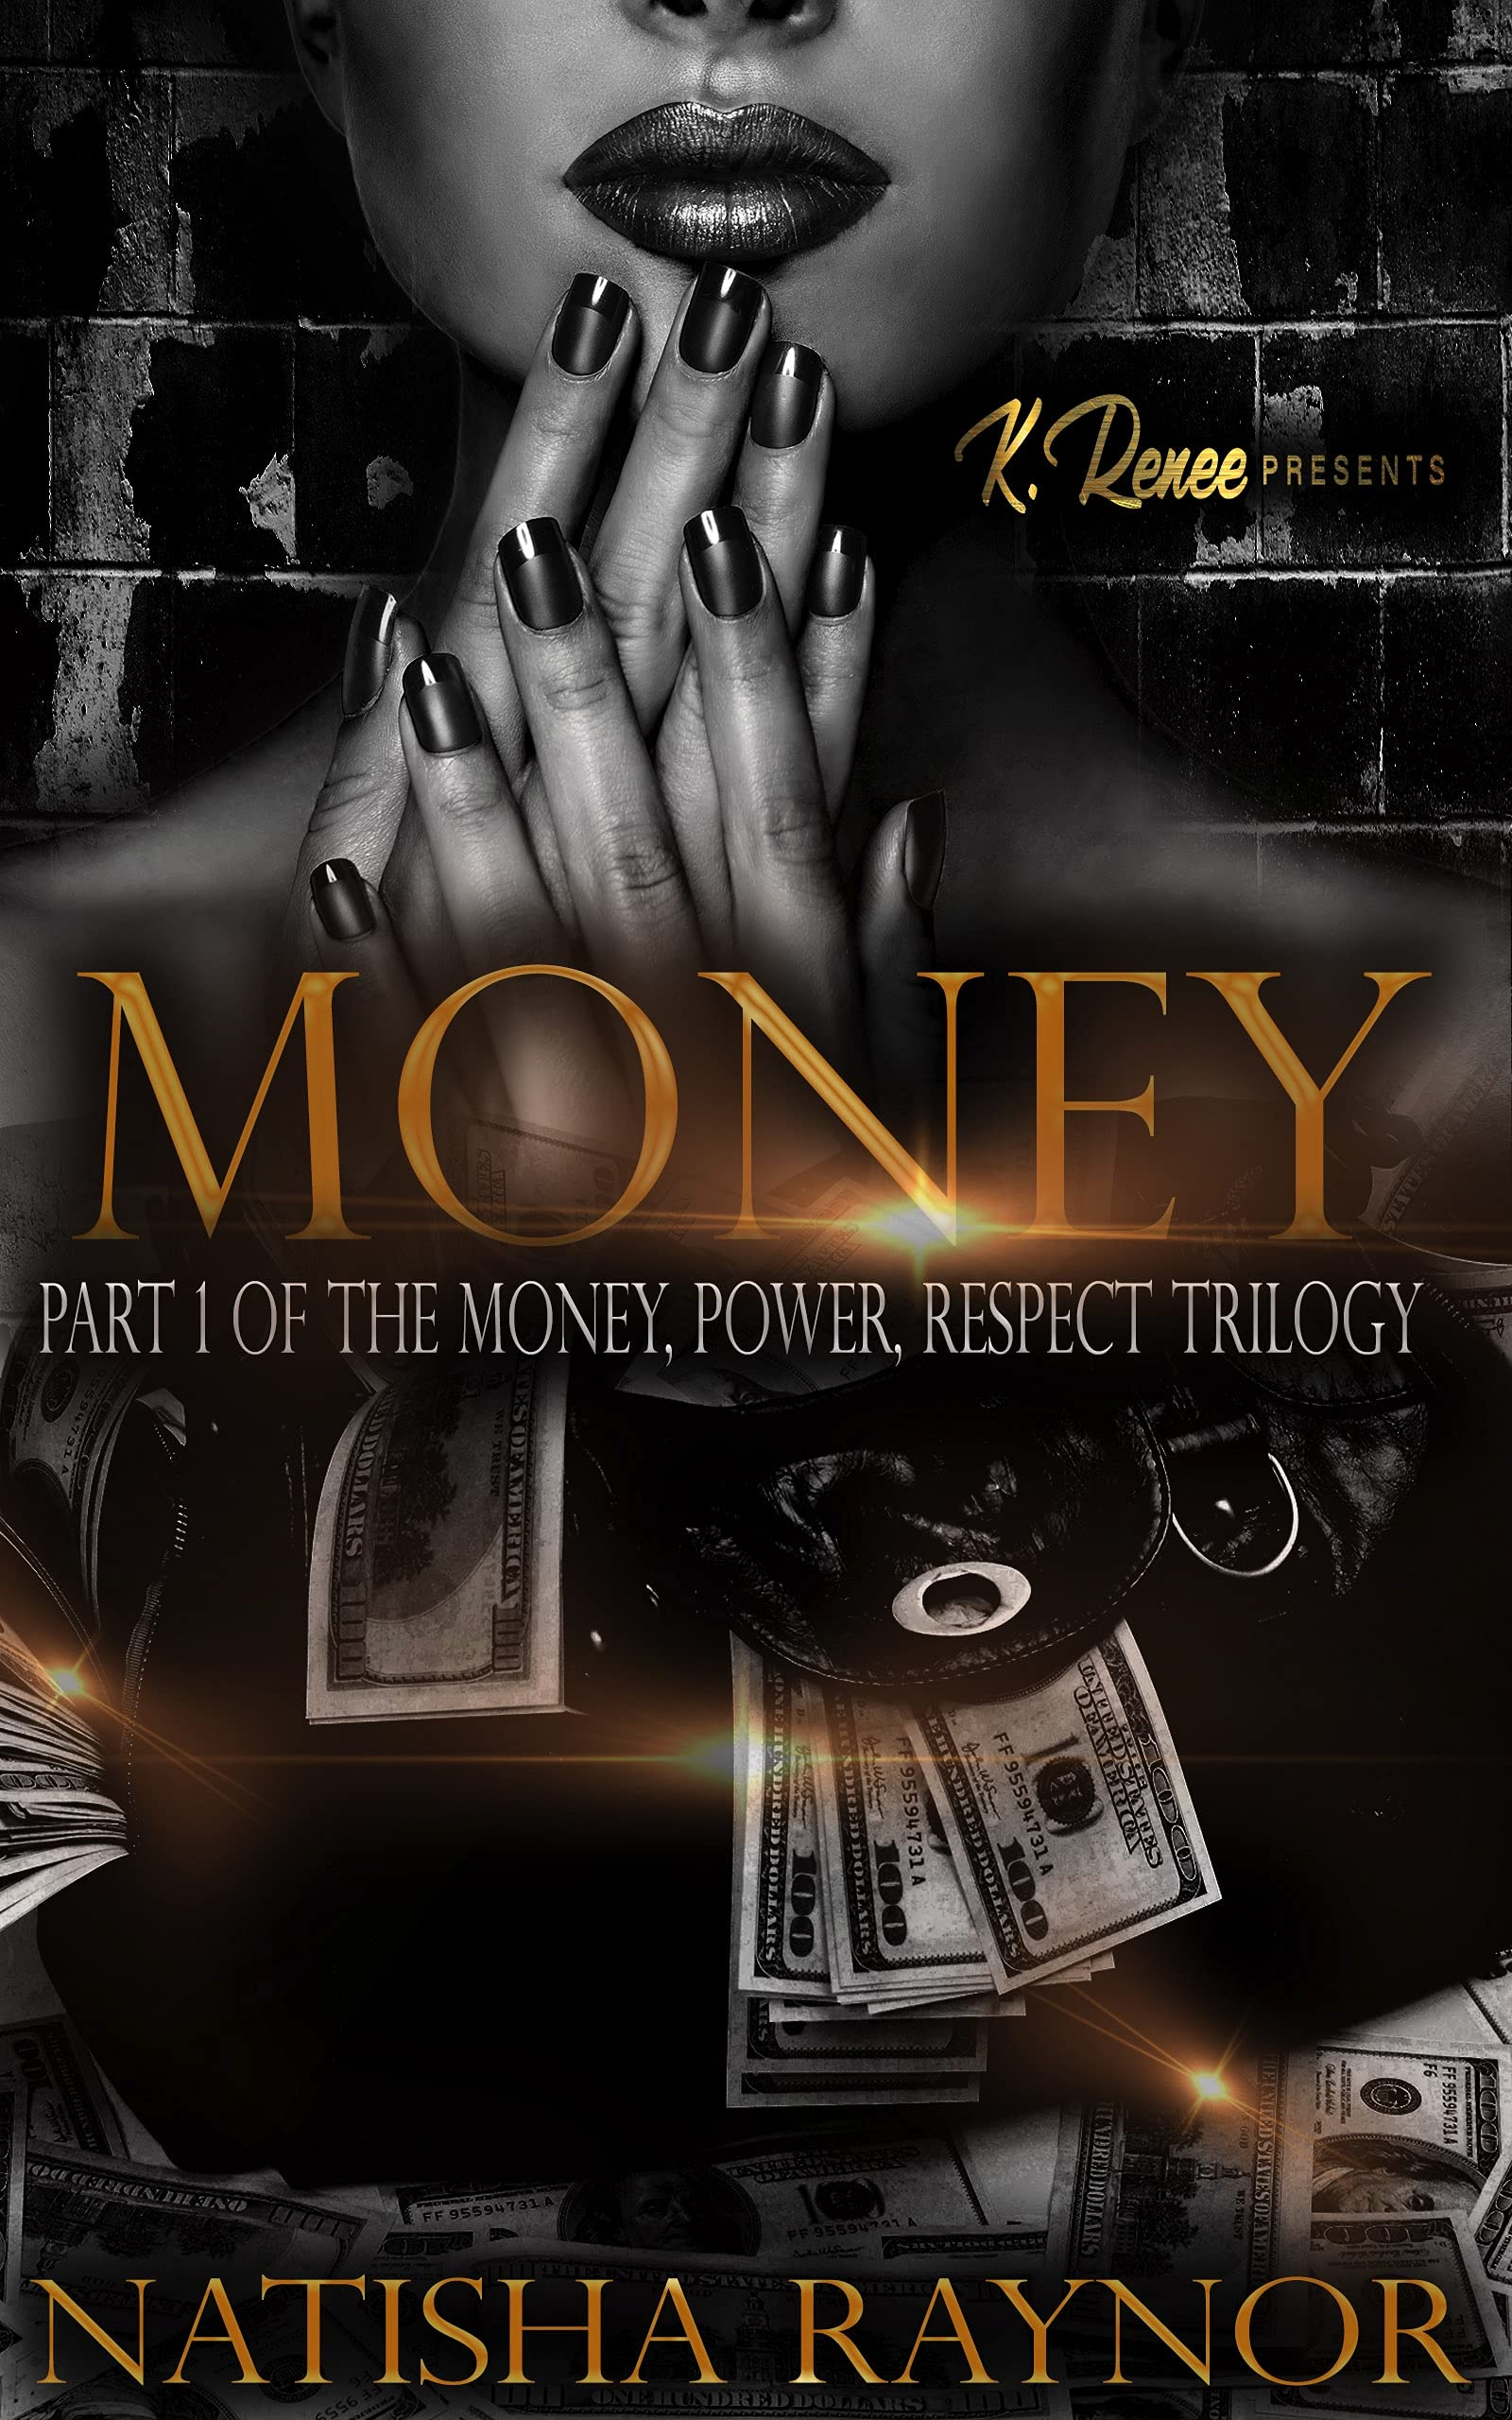 MONEY: Part 1 of the Money, Power, and Respect Trilogy